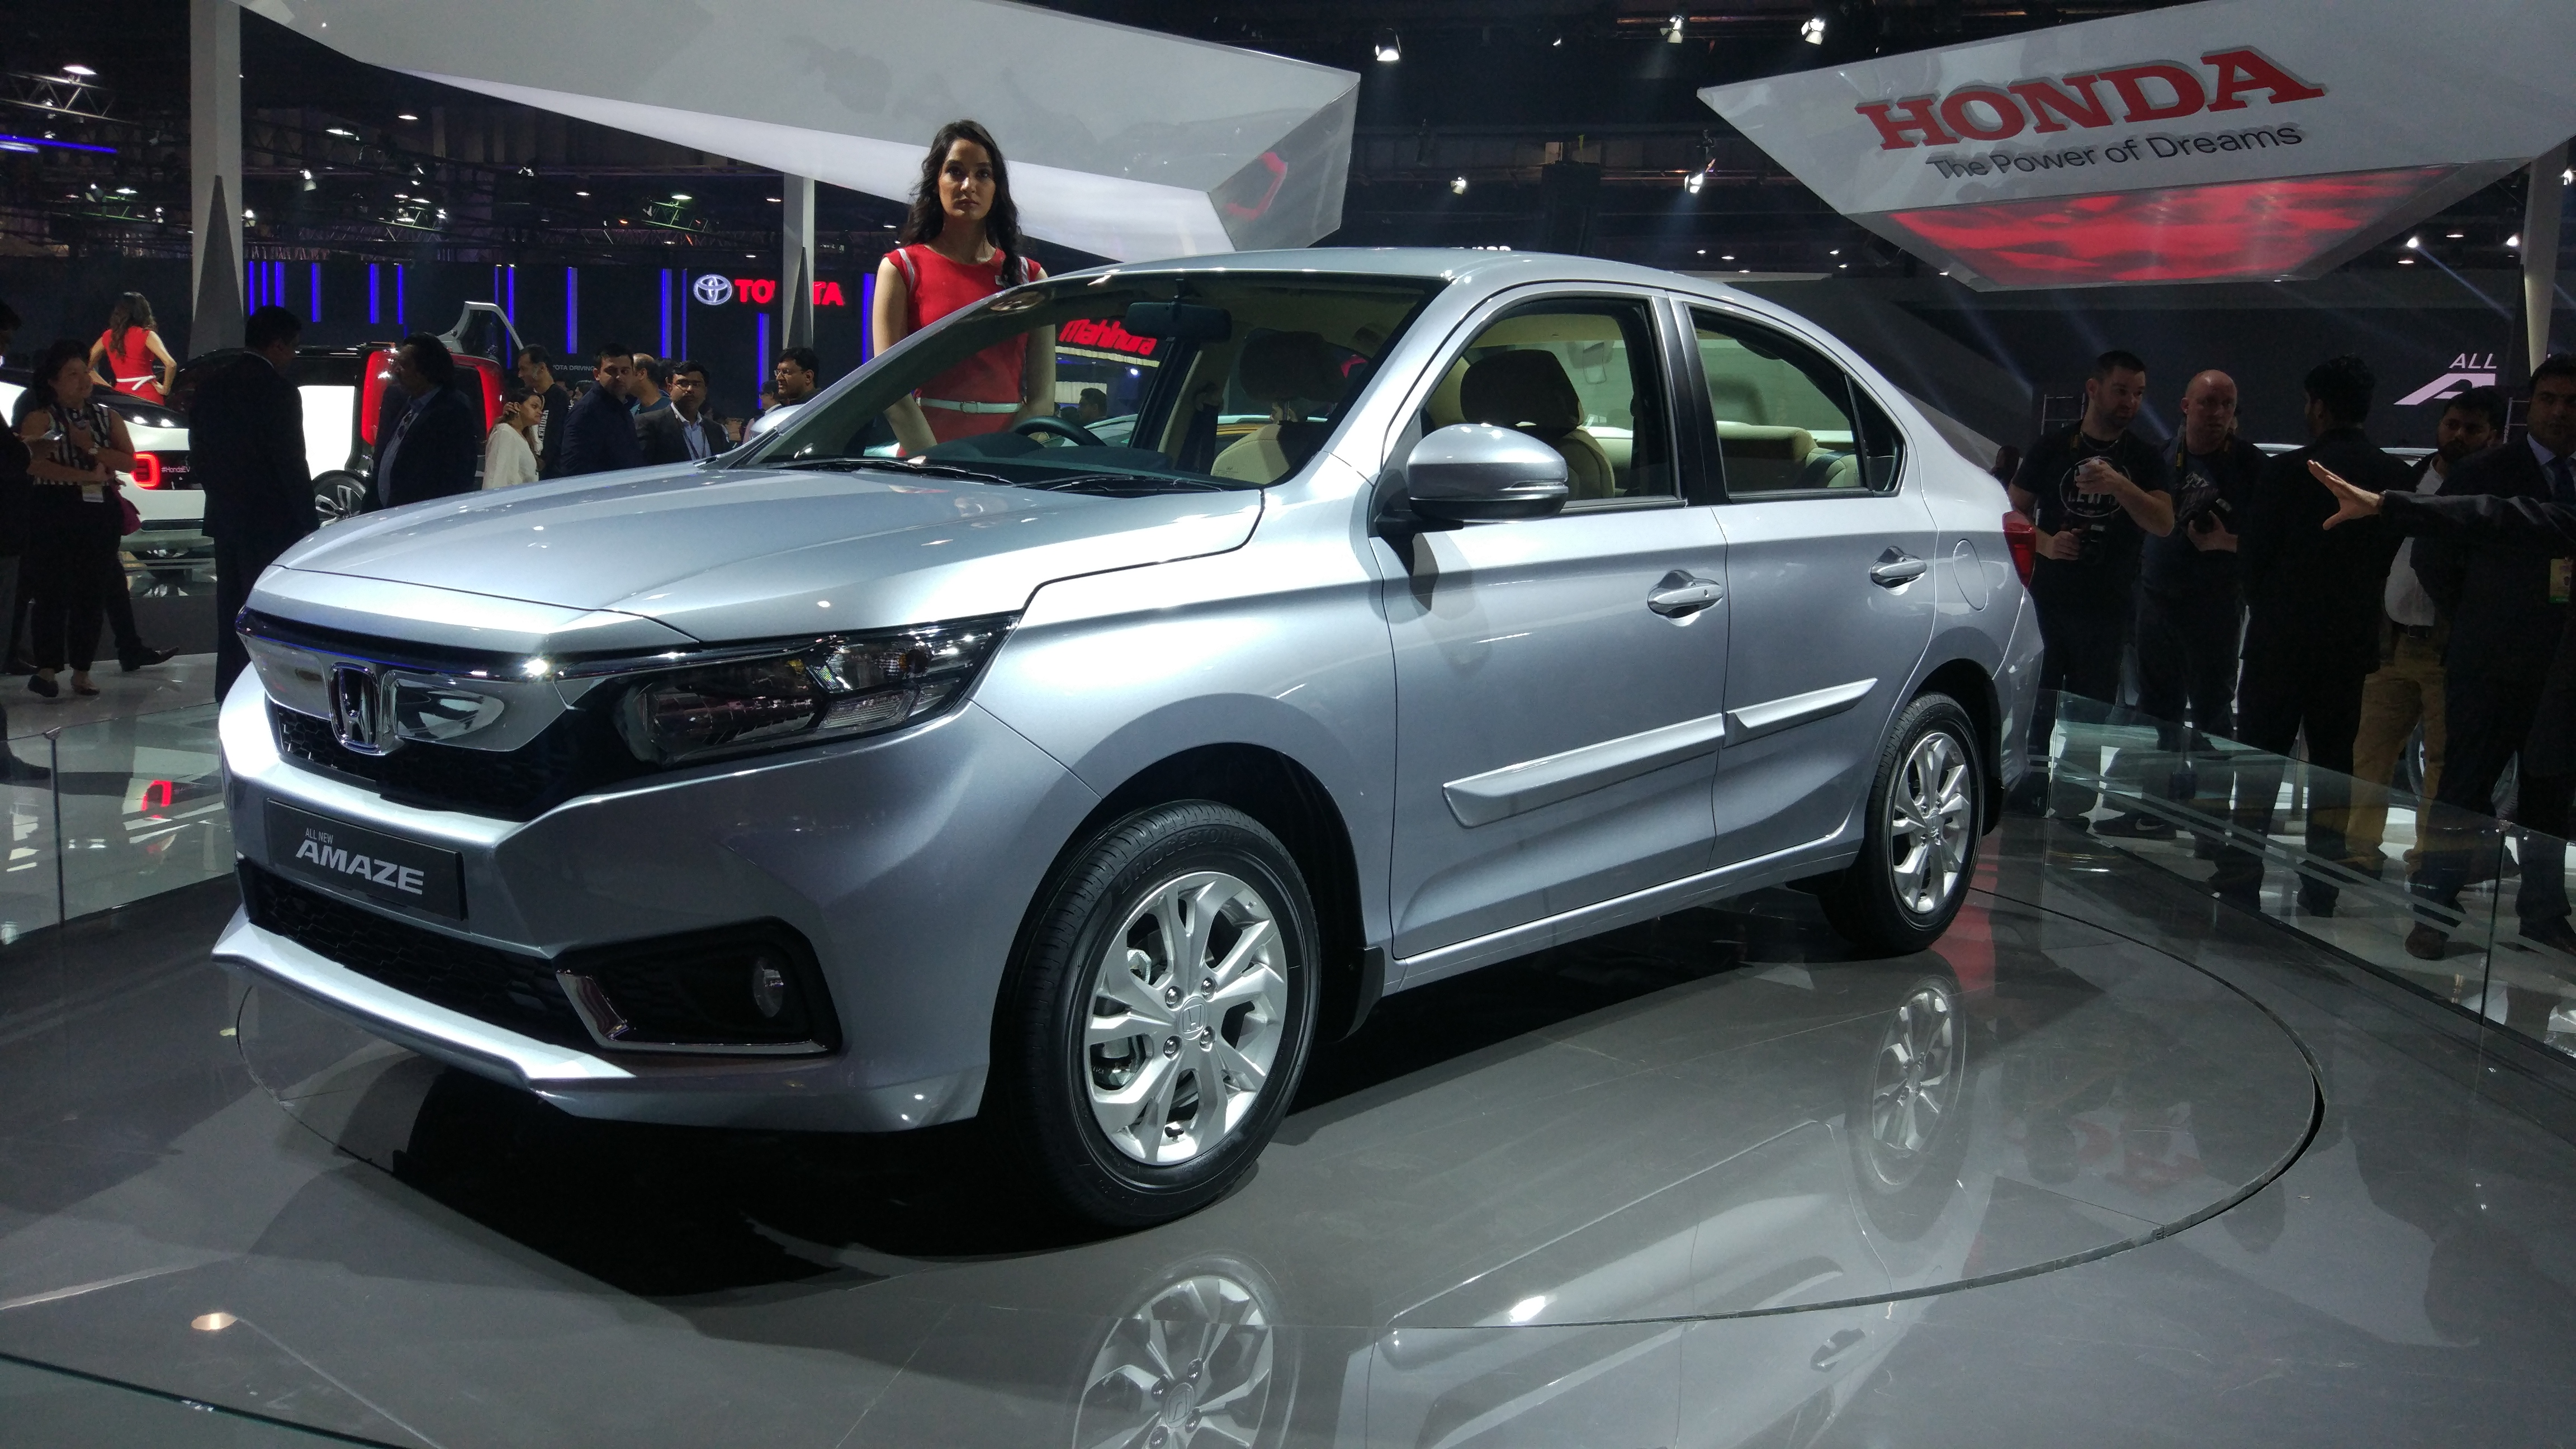 Honda Launched Amaze, Civic, Sports EV Concepts in Auto Expo 2018